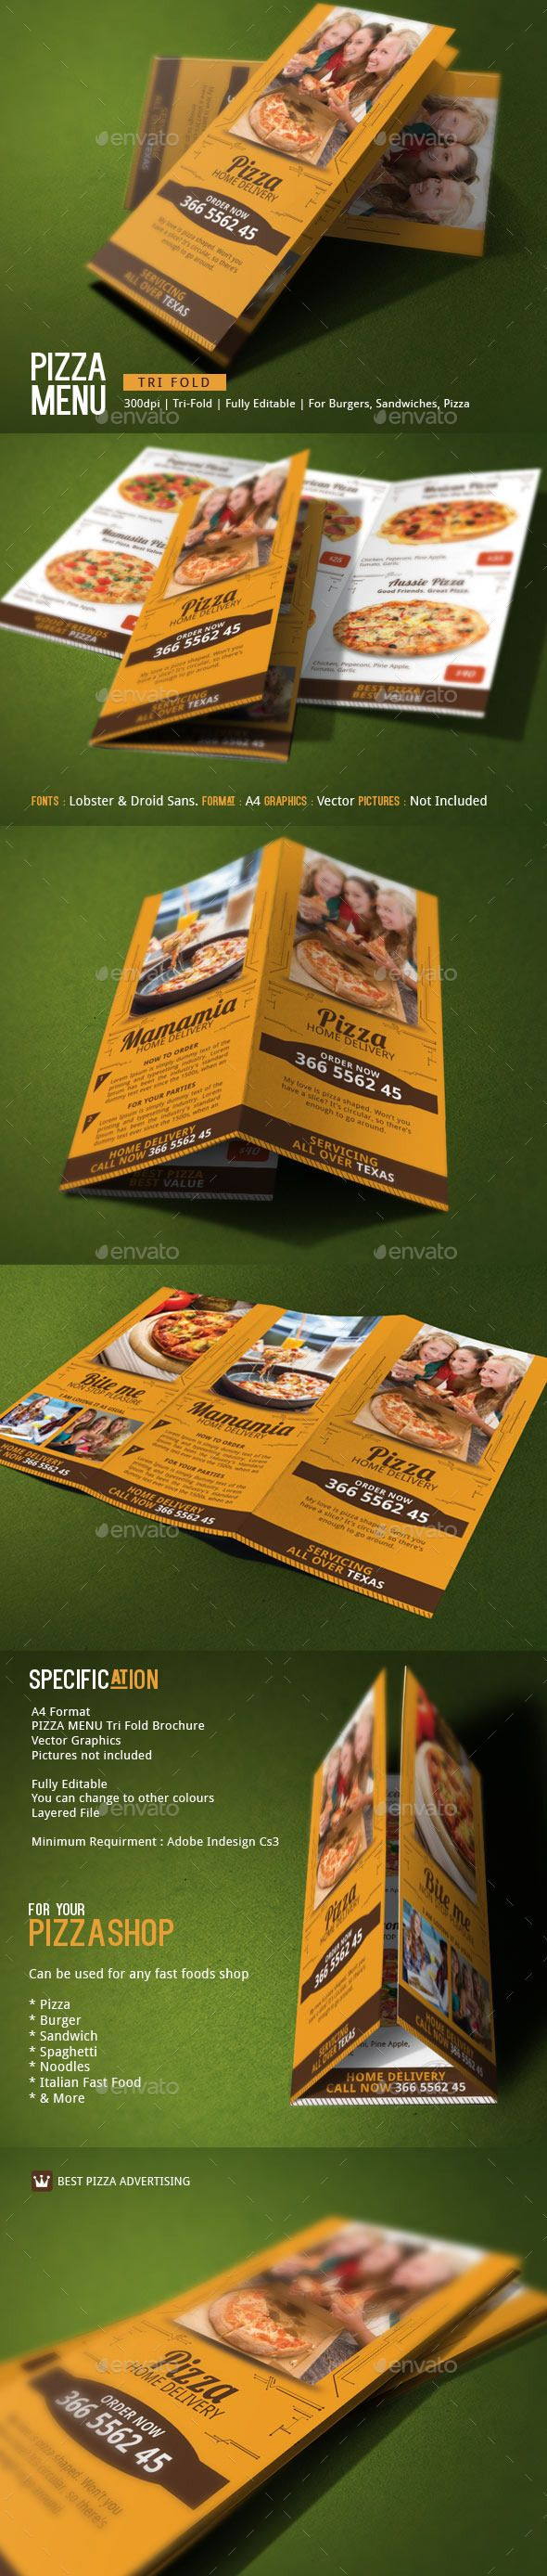 Pizza delivery brochure template brochure template menu pizza delivery brochure template menu templatesbrochure templatefood menu templatetri fold pronofoot35fo Choice Image